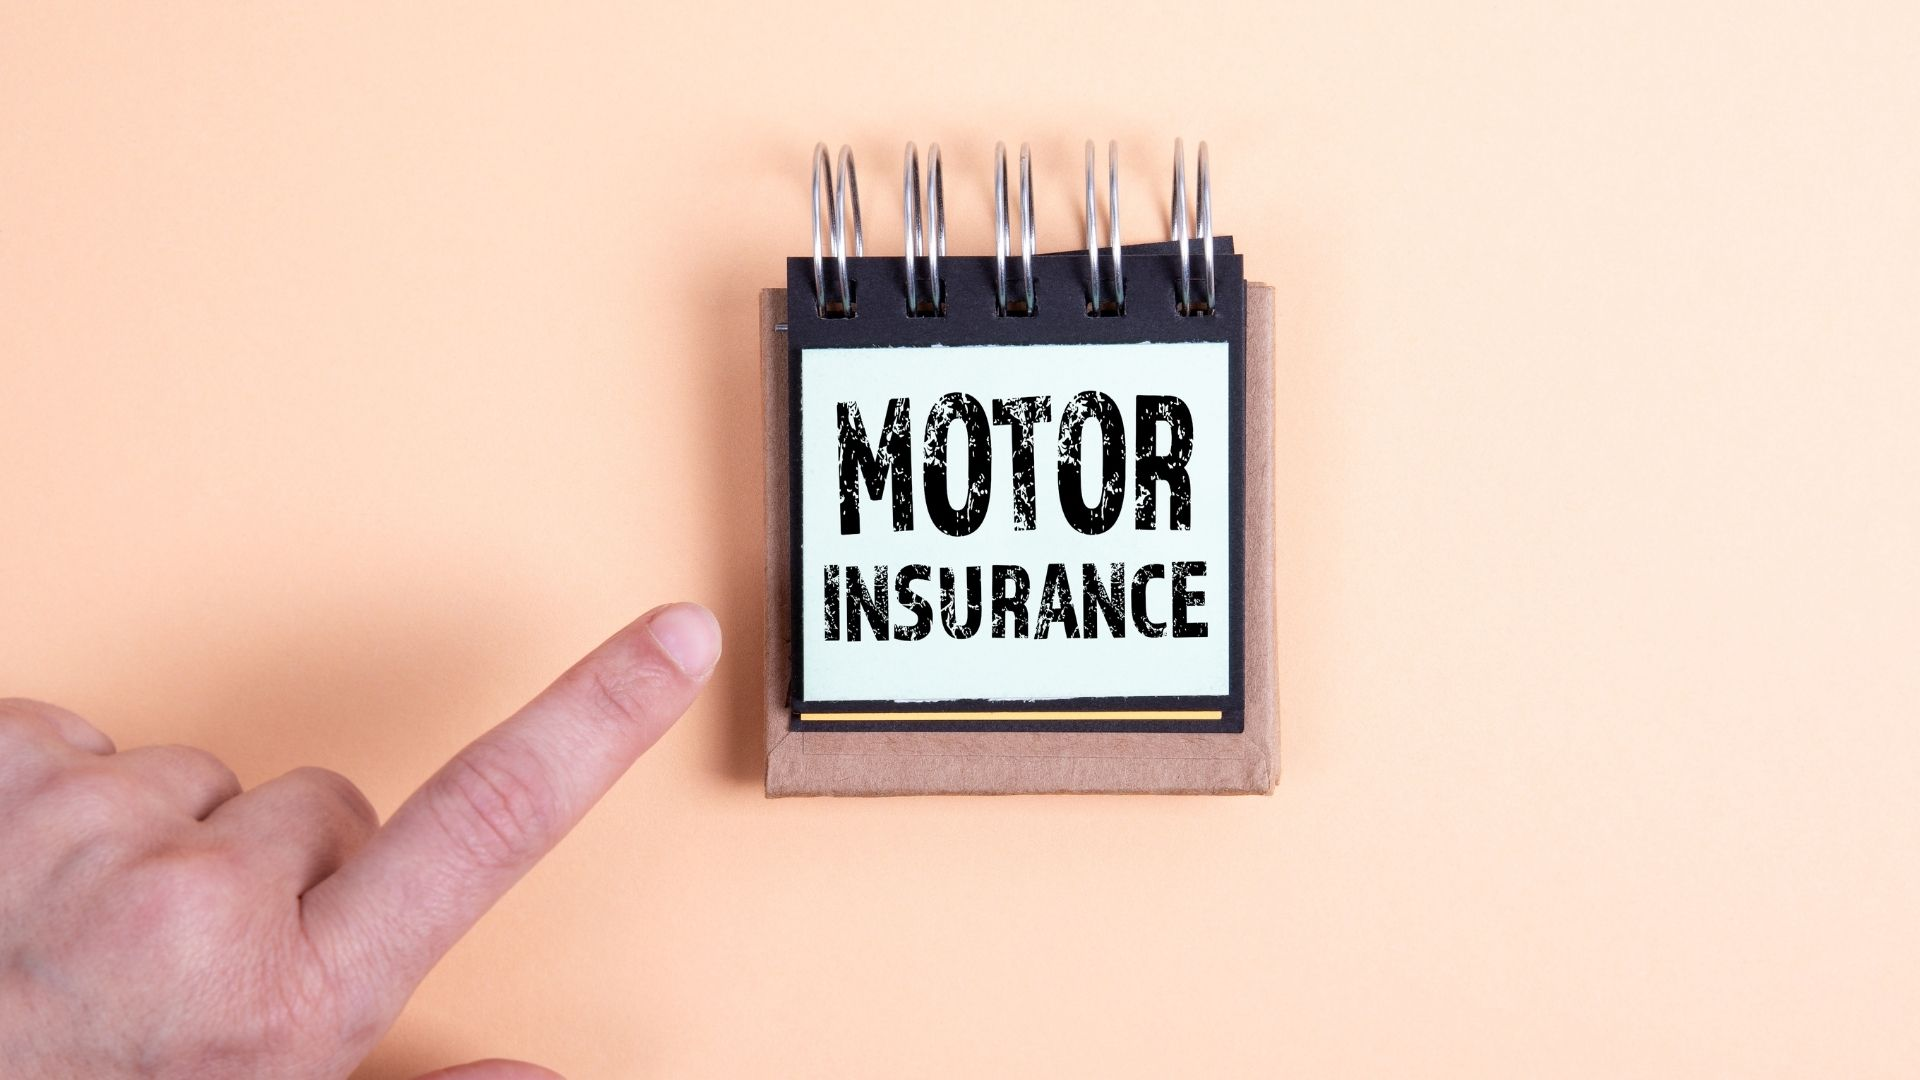 2020: The paradoxical year that has reshaped the future of motor insurance and related sectors 41